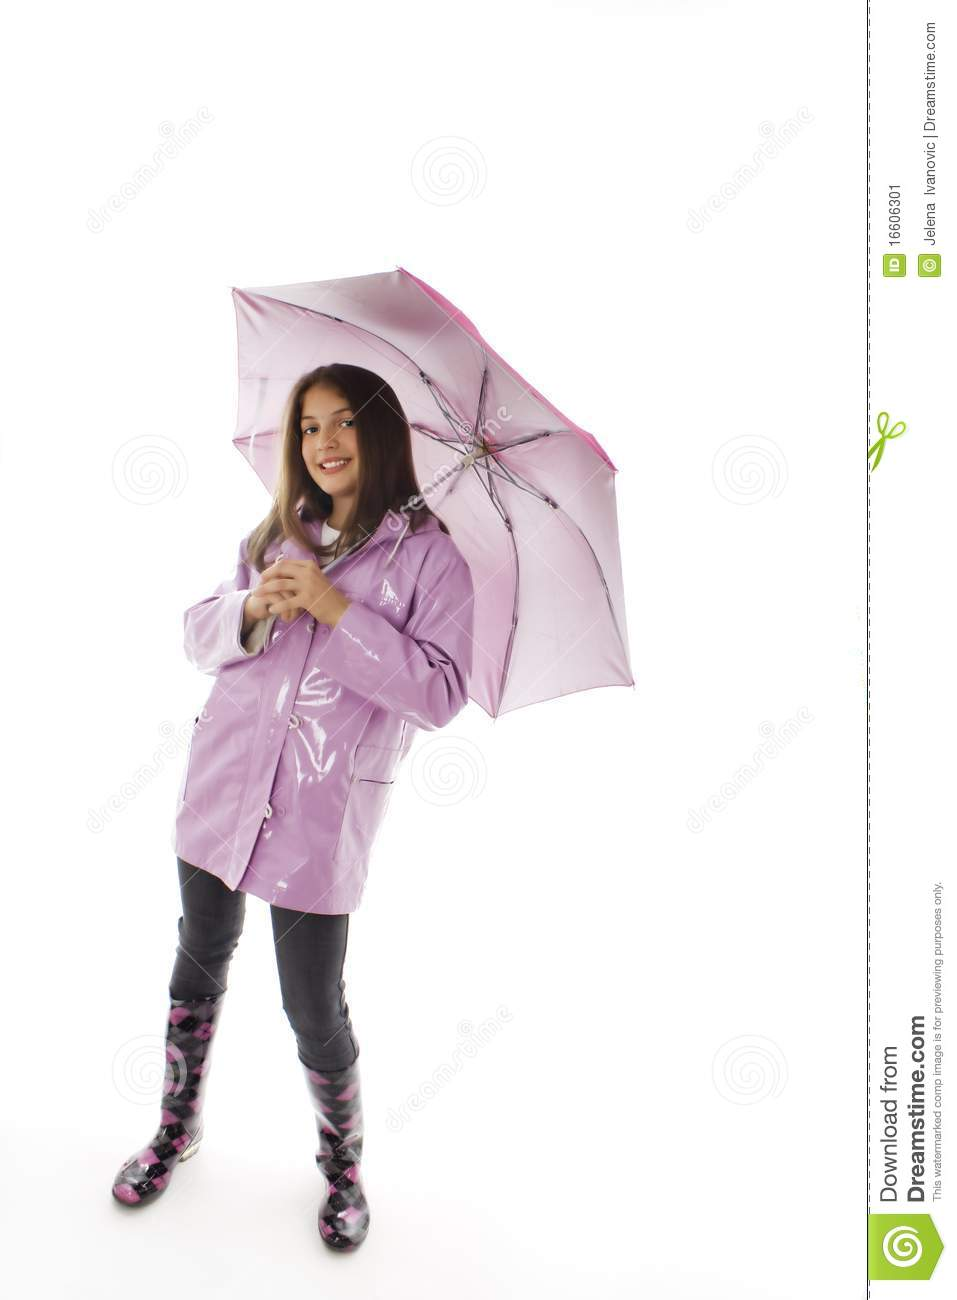 Teen Raincoat